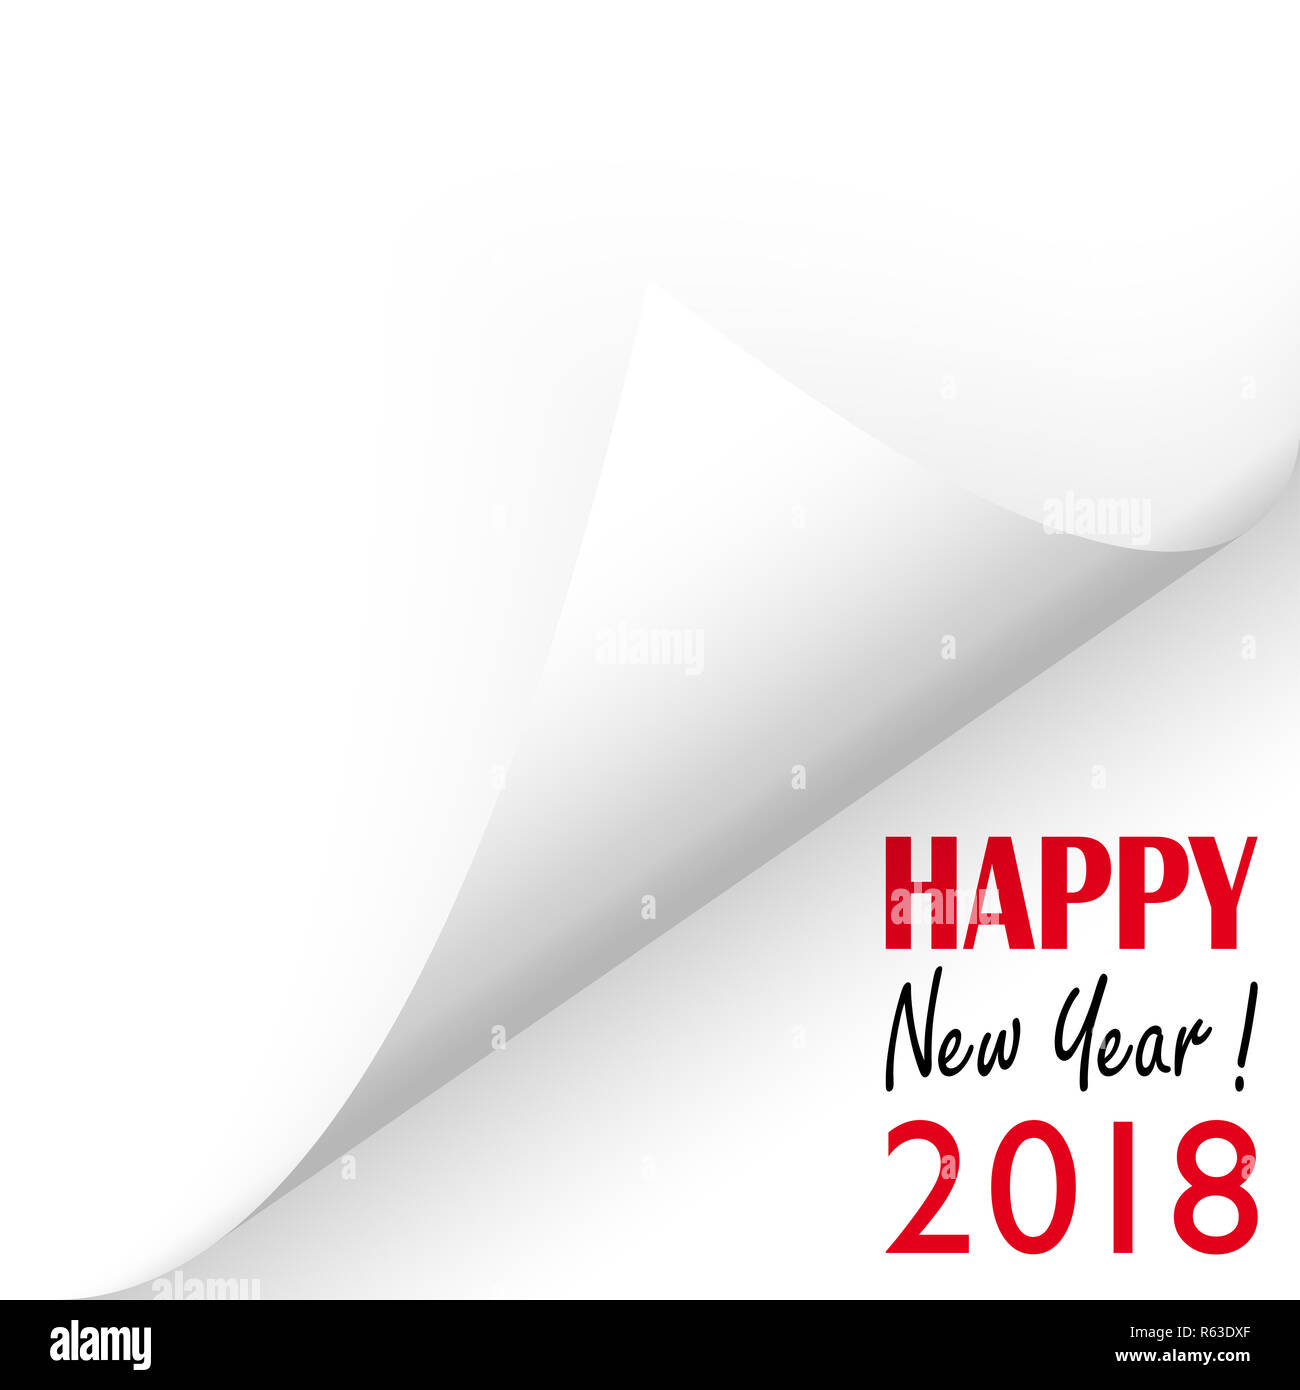 new year 2018 greetings - Stock Image